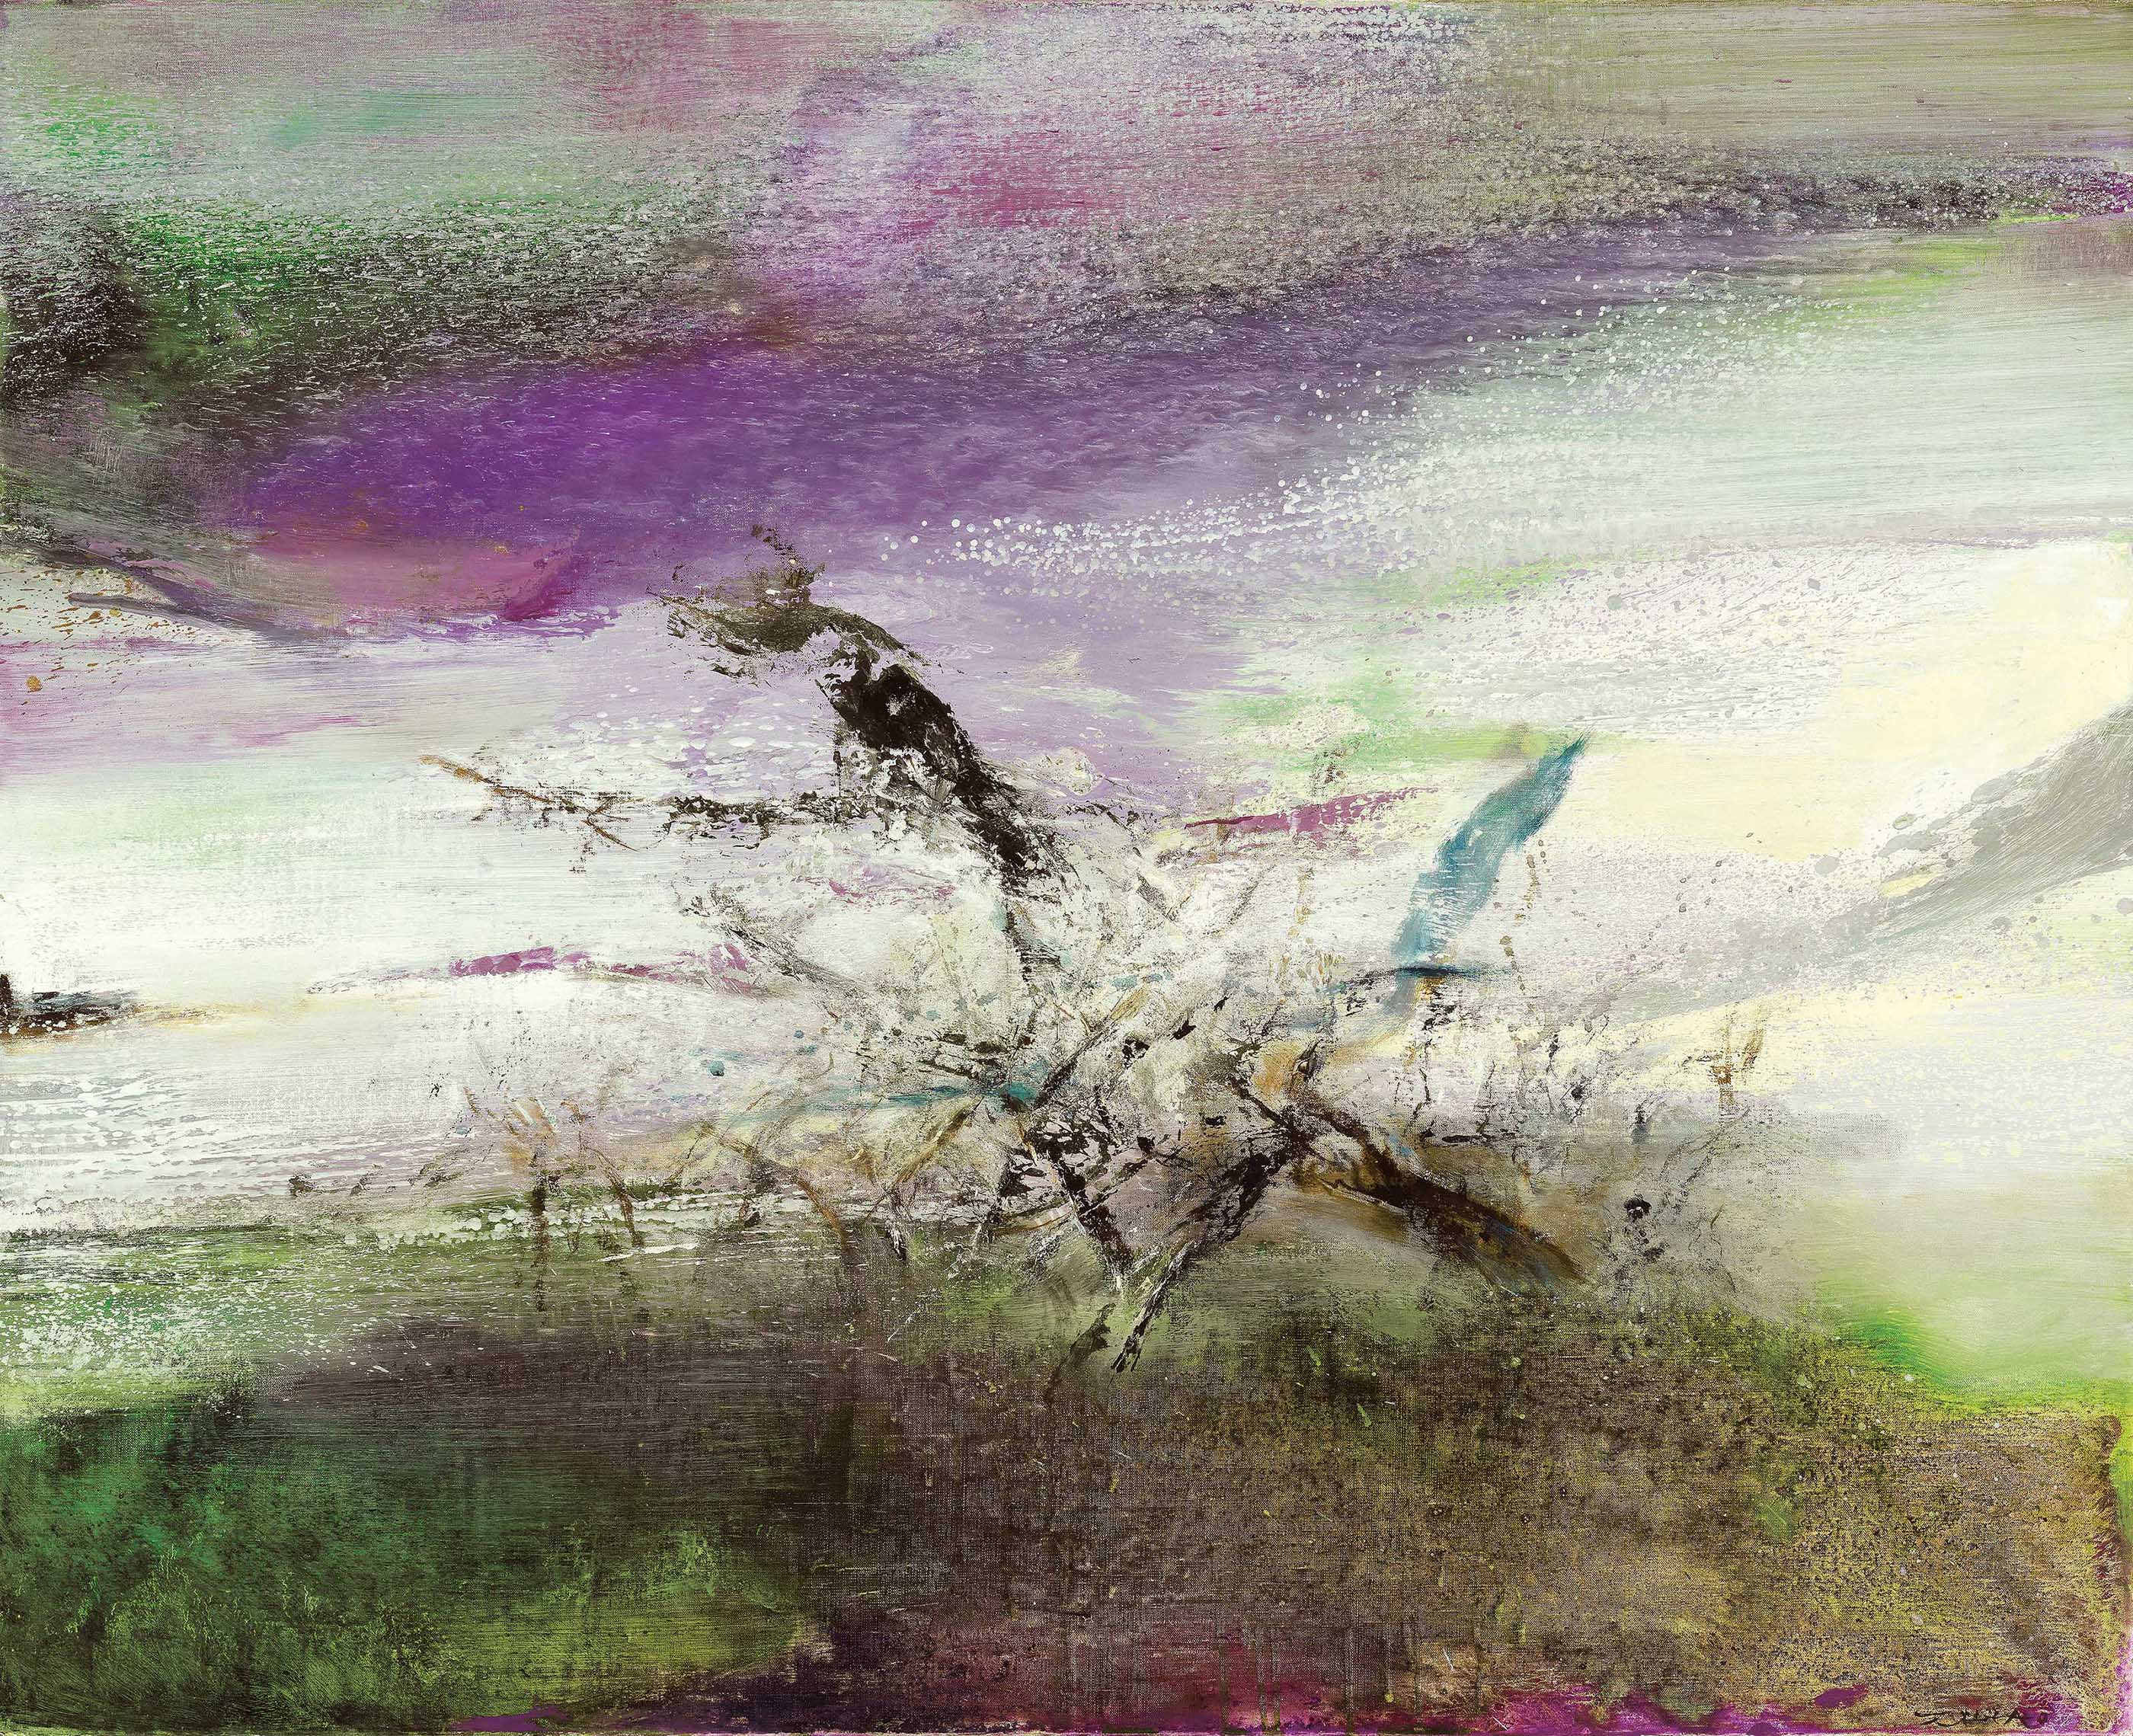 Zao Wou-Ki (1920-2013), 05.10.91, 1991. 81 x 100 cm (31⅞ x 39⅜ in). Estimate HK$8,000,000-12,000,000. Offered in Asian 20th Century & Contemporary Art on 26 May at Christie's in Hong Kong